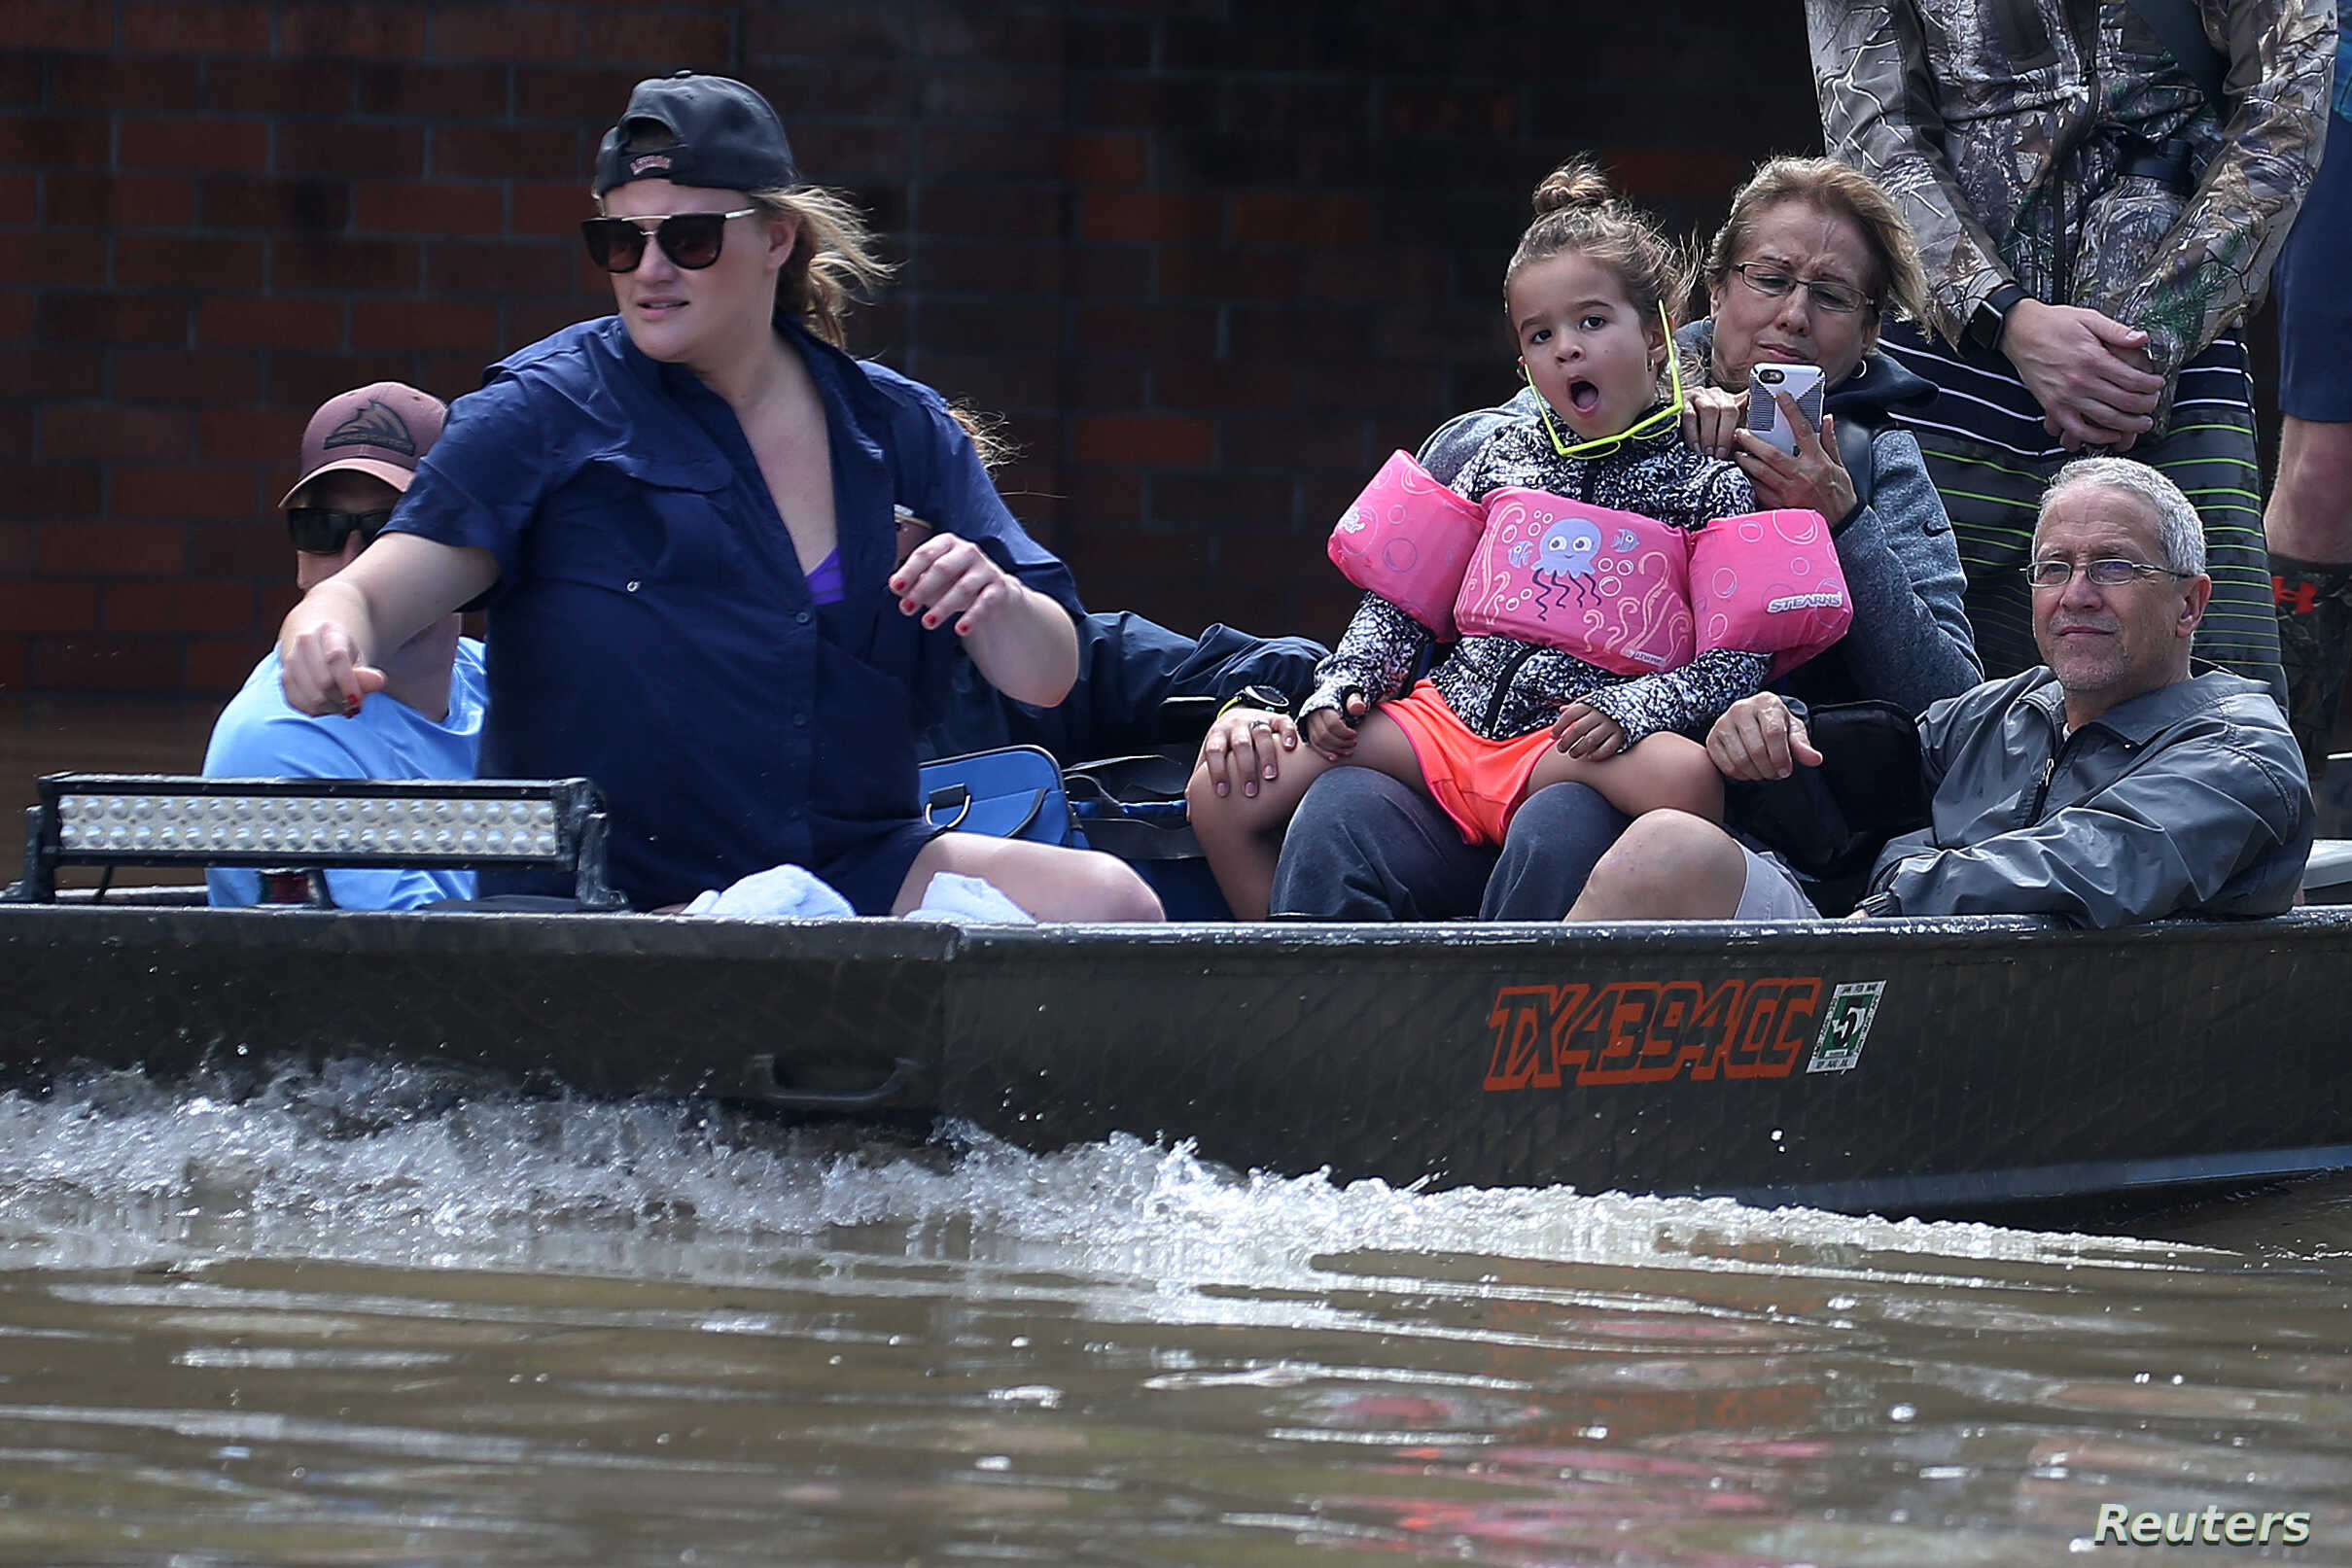 People ride a boat though flood water after being evacuated from the rising water following Hurricane Harvey in a neighborhood west of Houston, Texas, U.S., August 30, 2017.